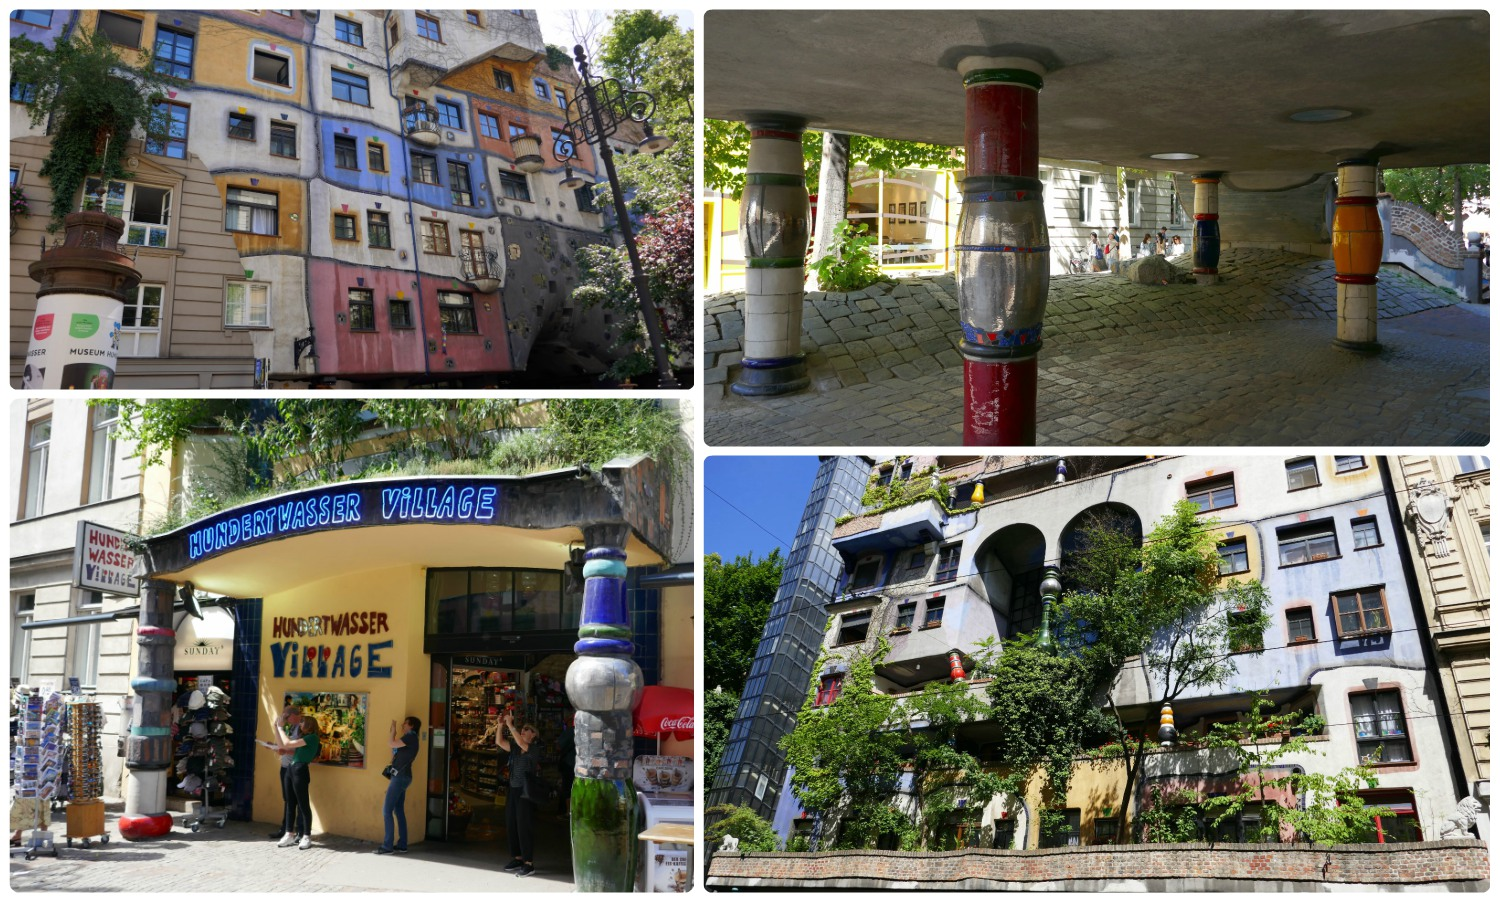 Visit Hundertwasser House and be sure to walk around the building to see it all! Plus, across from the building is the Hunderwasser Village (bottom left).